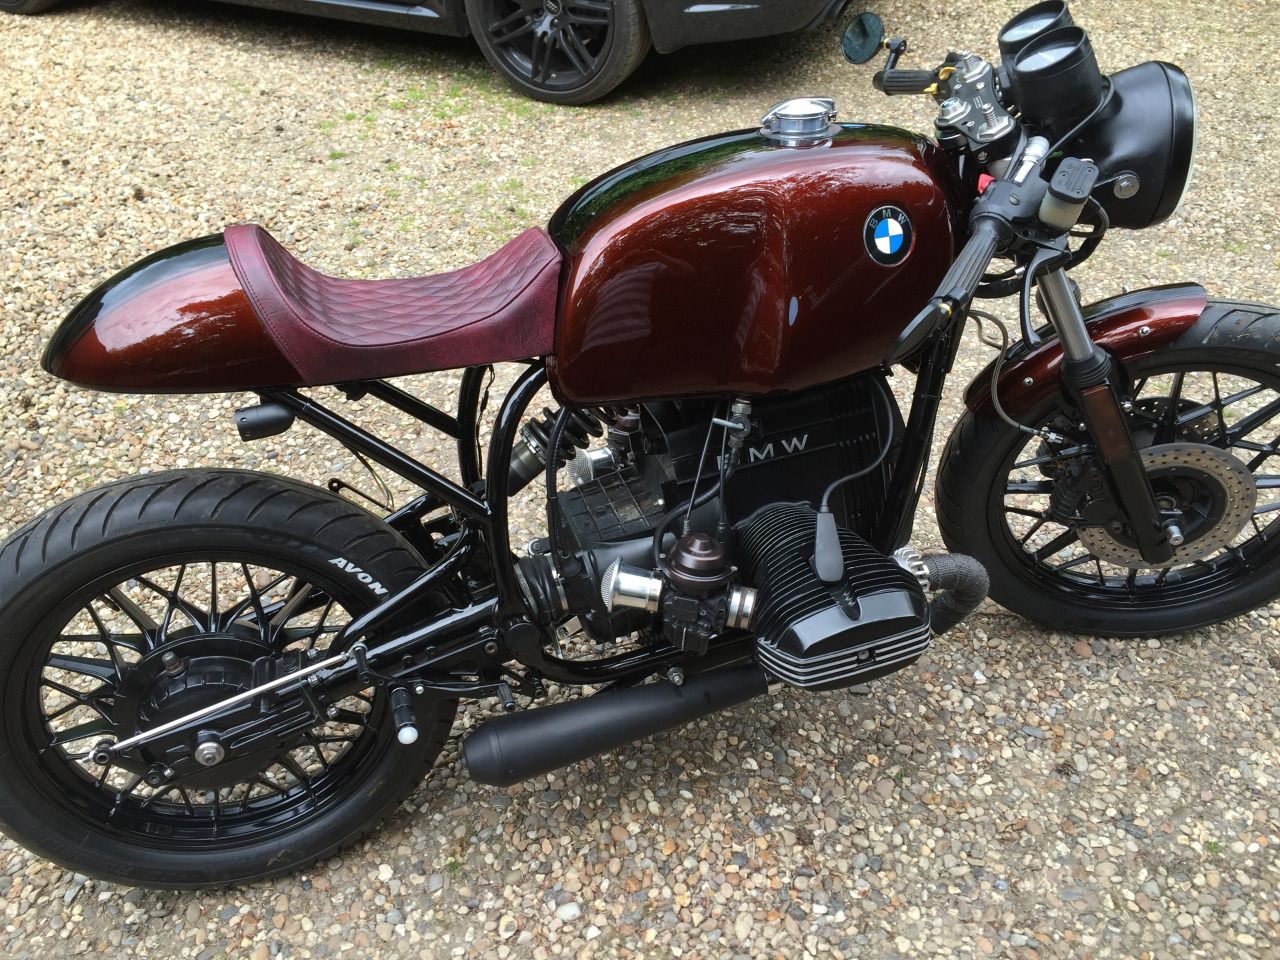 BMW R80 Cafe Racer by Naked Speed #motorcycles #caferacer #motos | caferacerpasion.com